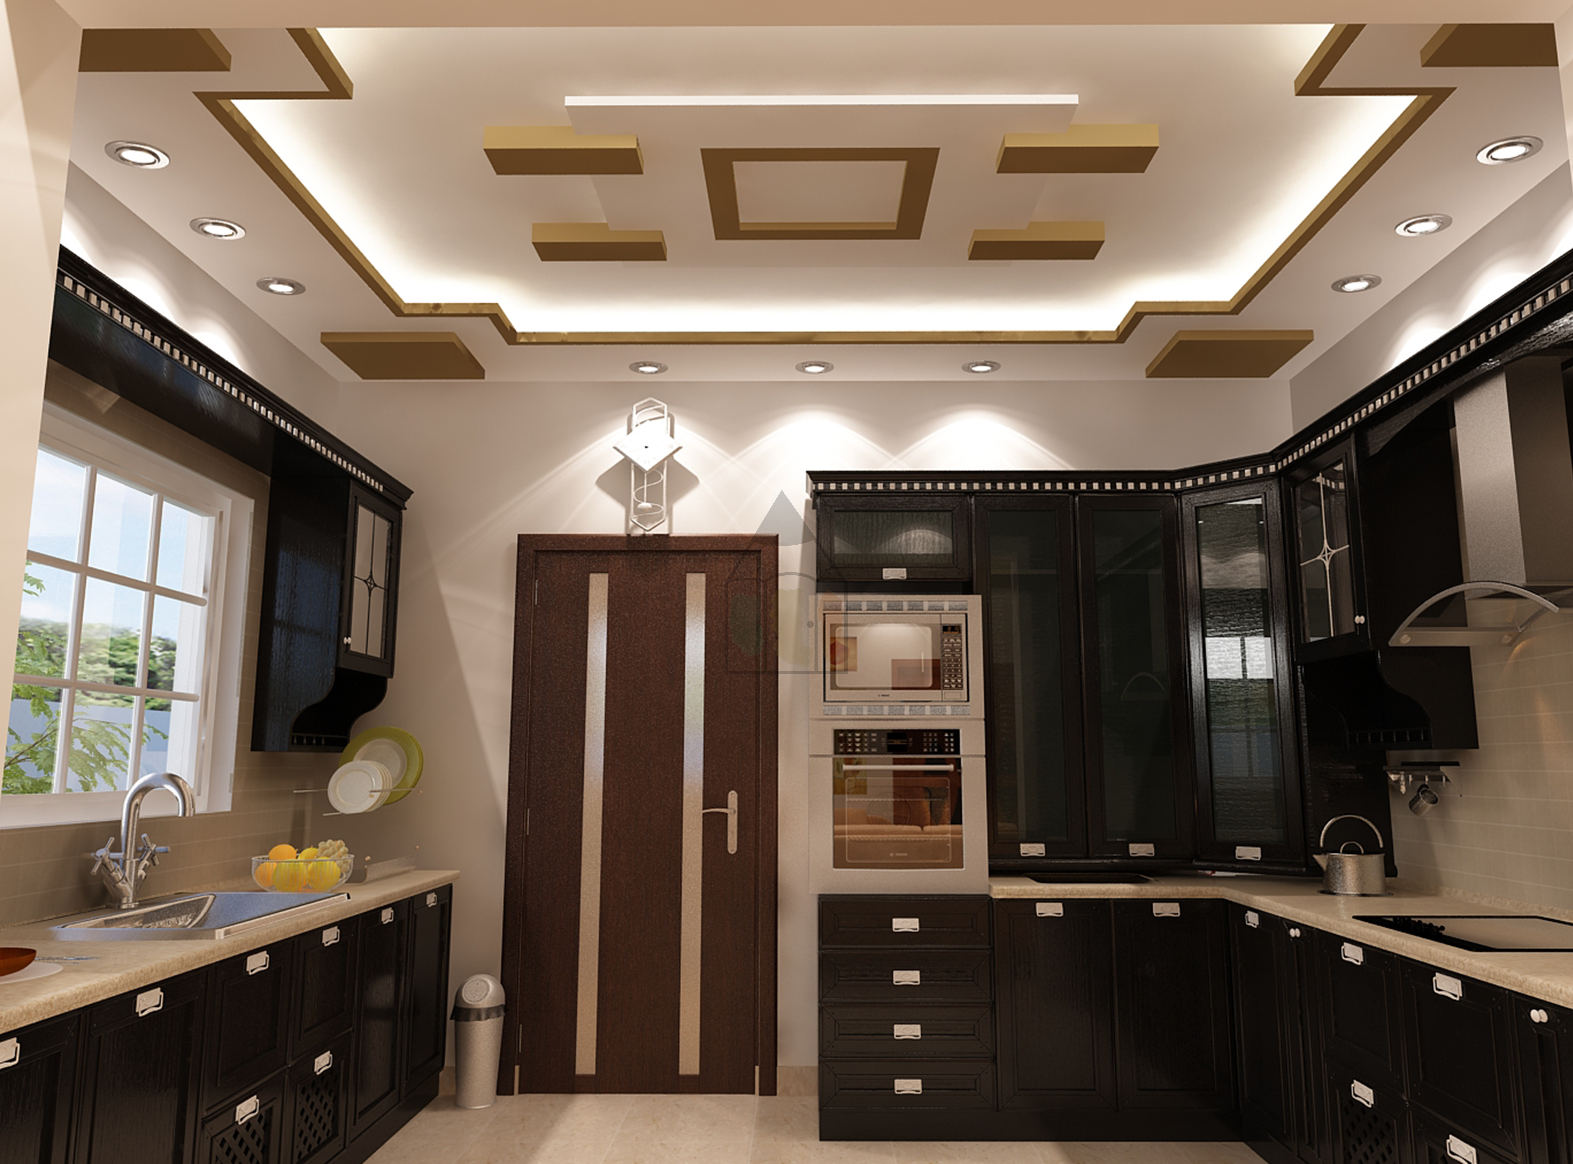 Beau Pakistani Kitchen Design